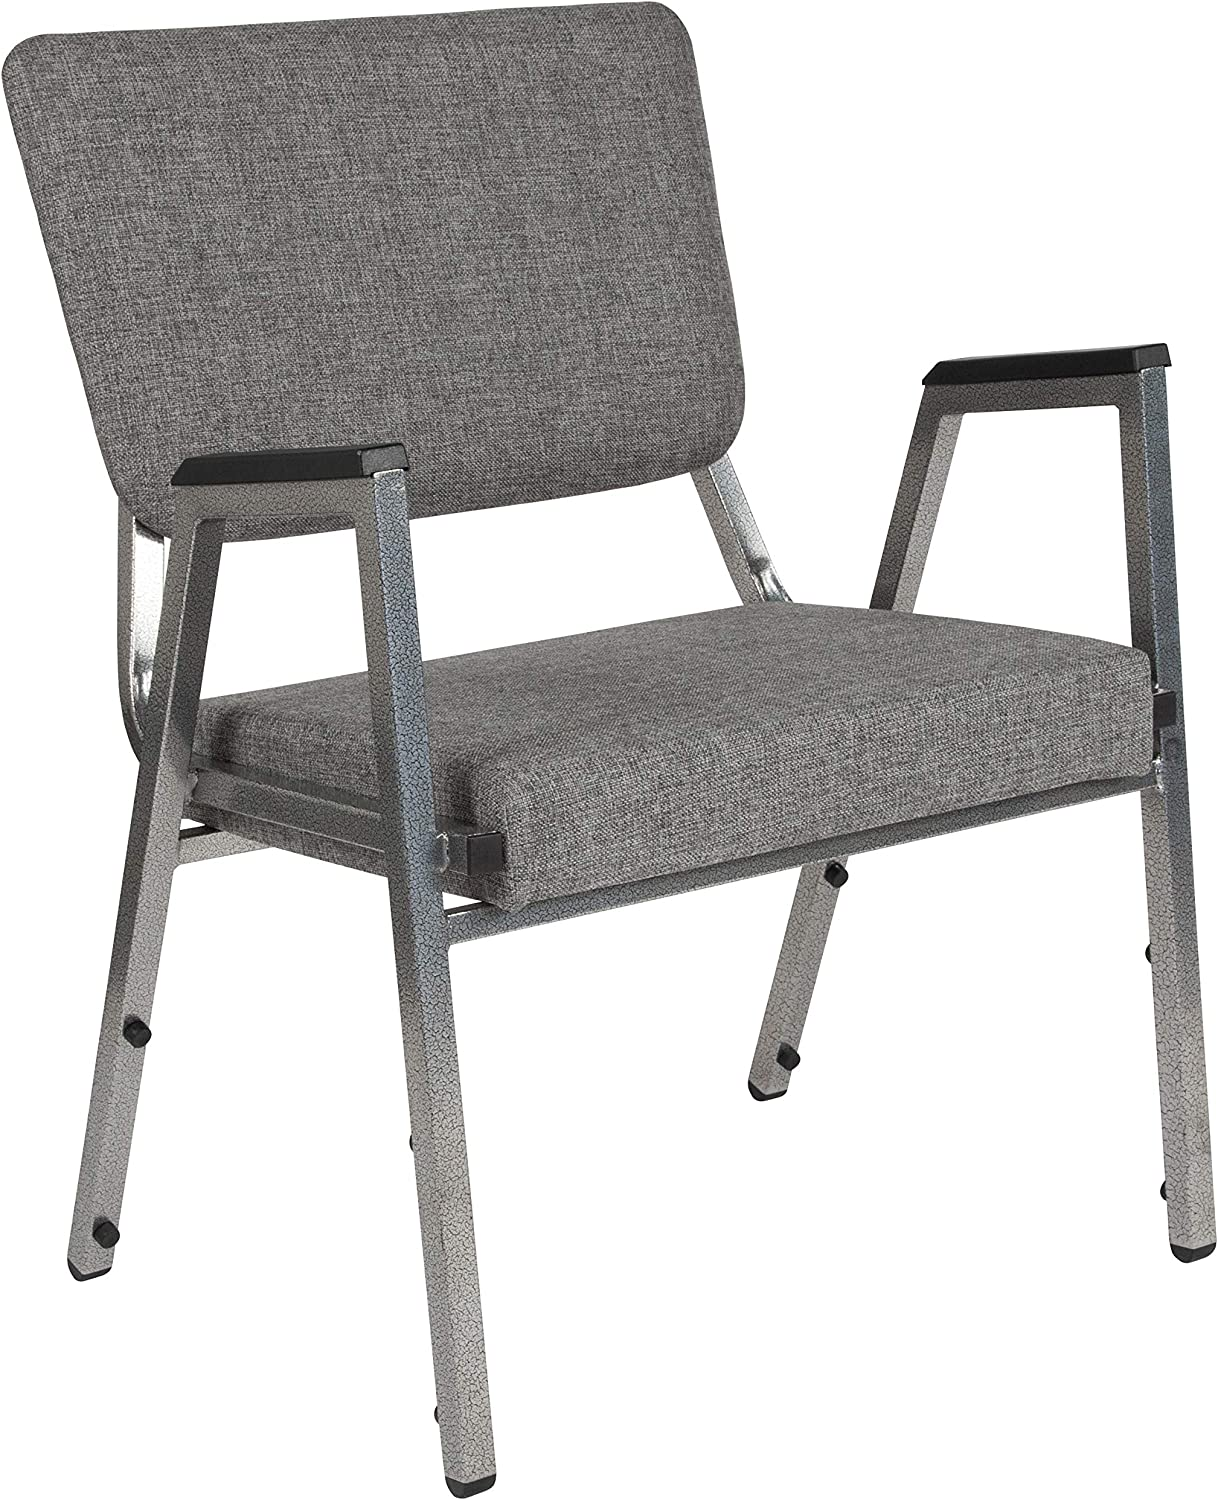 Flash Furniture HERCULES Series 1500 lb. Rated Gray Antimicrobial Fabric Bariatric Medical Reception Arm Chair with 3/4 Panel Back